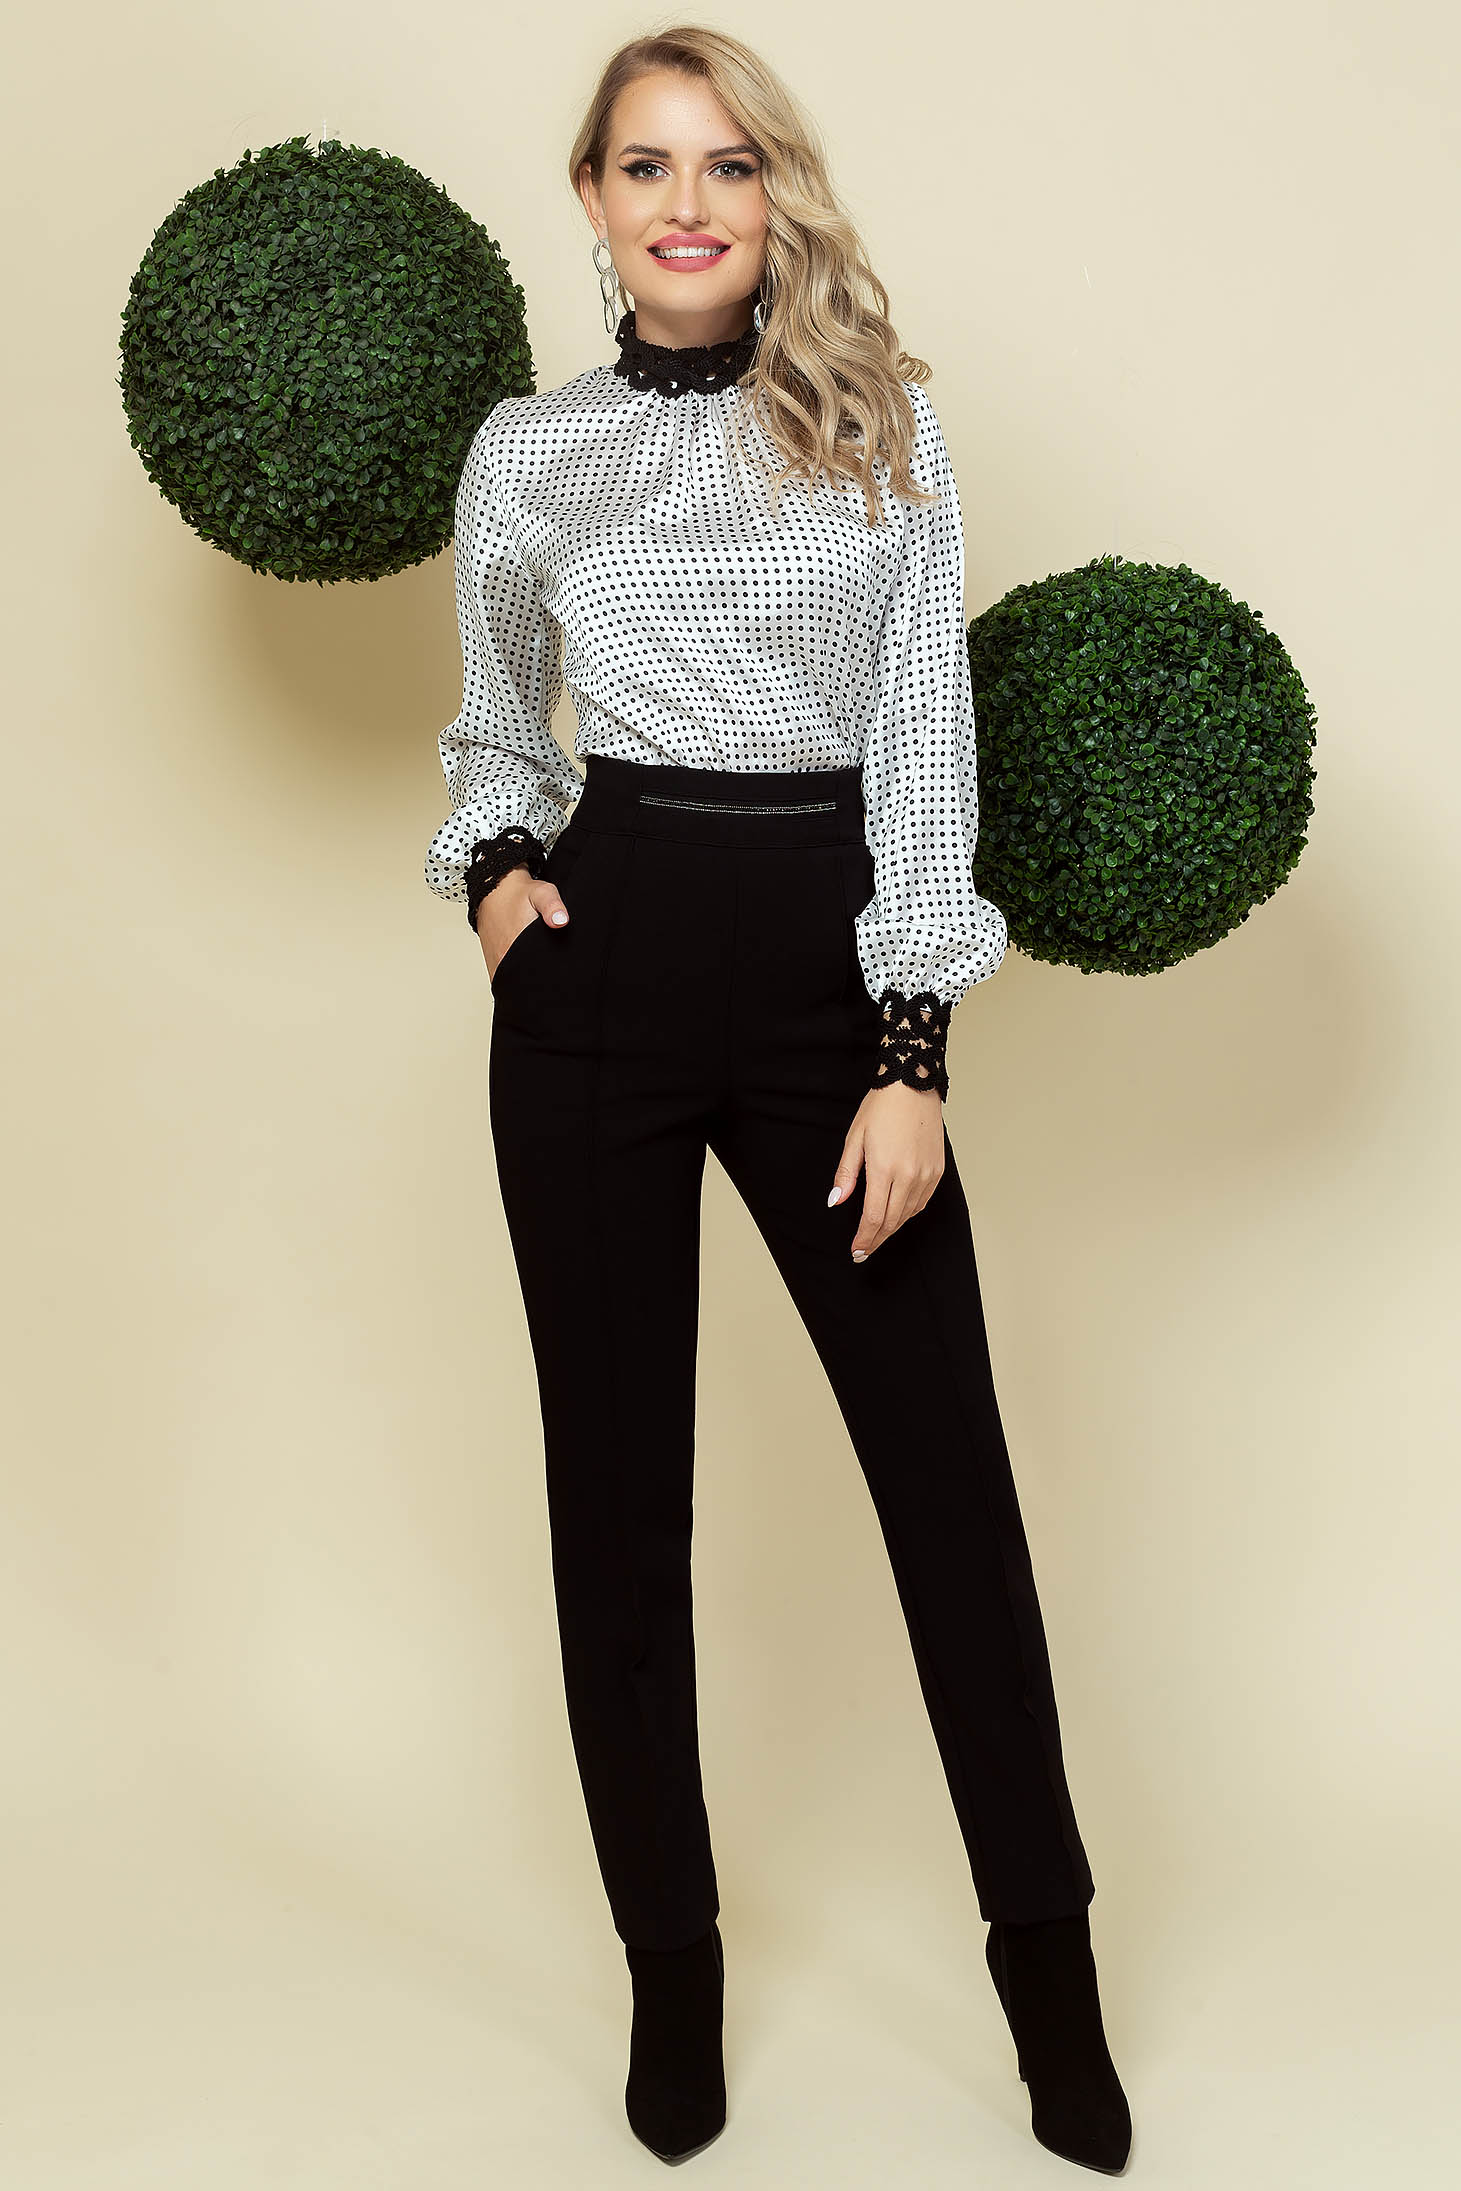 Black trousers office conical cloth high waisted lateral pockets